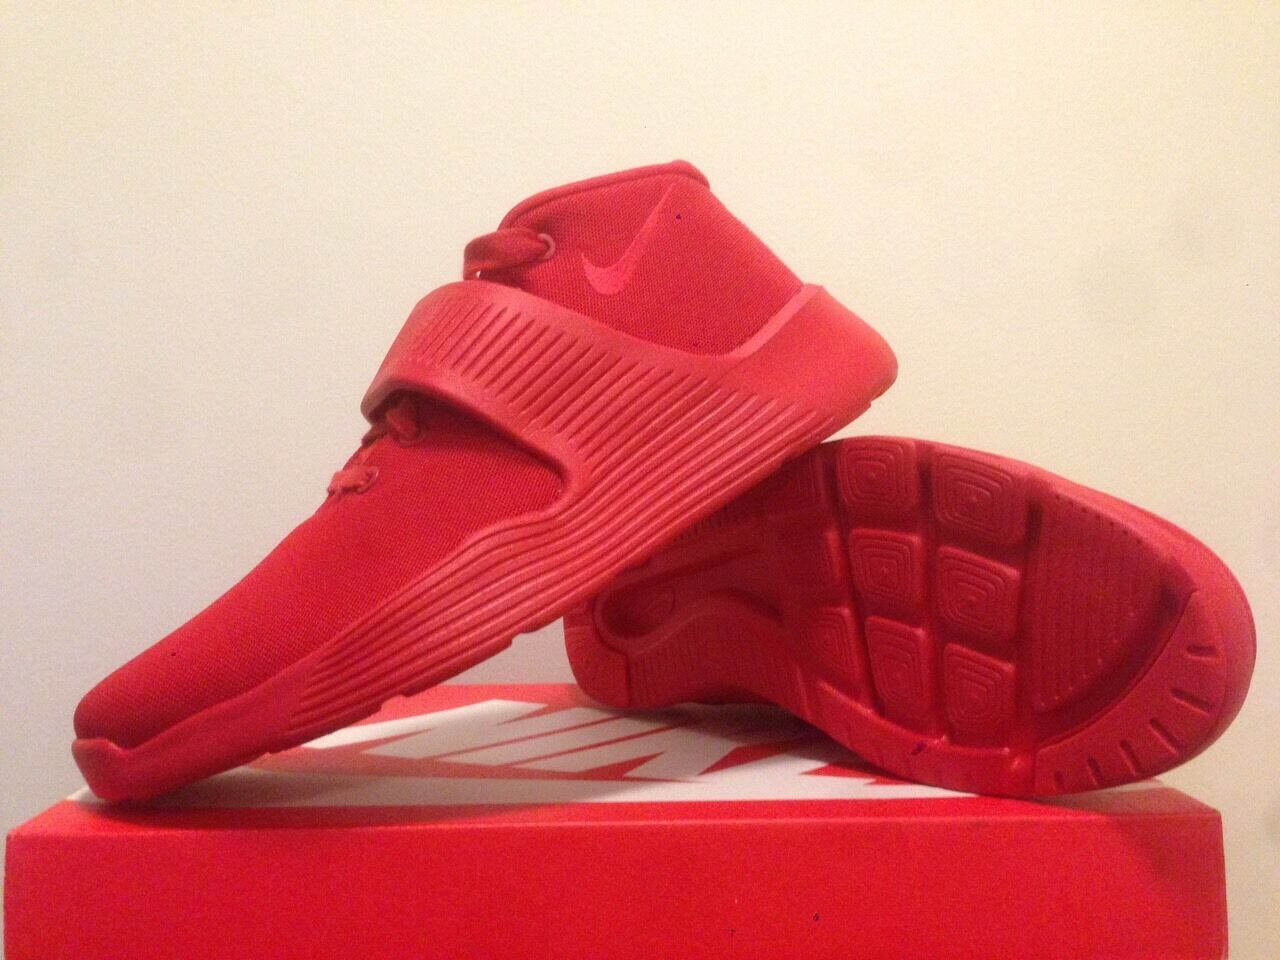 Nike Ultra XT Mesh  ( Red ) ) ) New size 9.5  (no box cover) 40d111